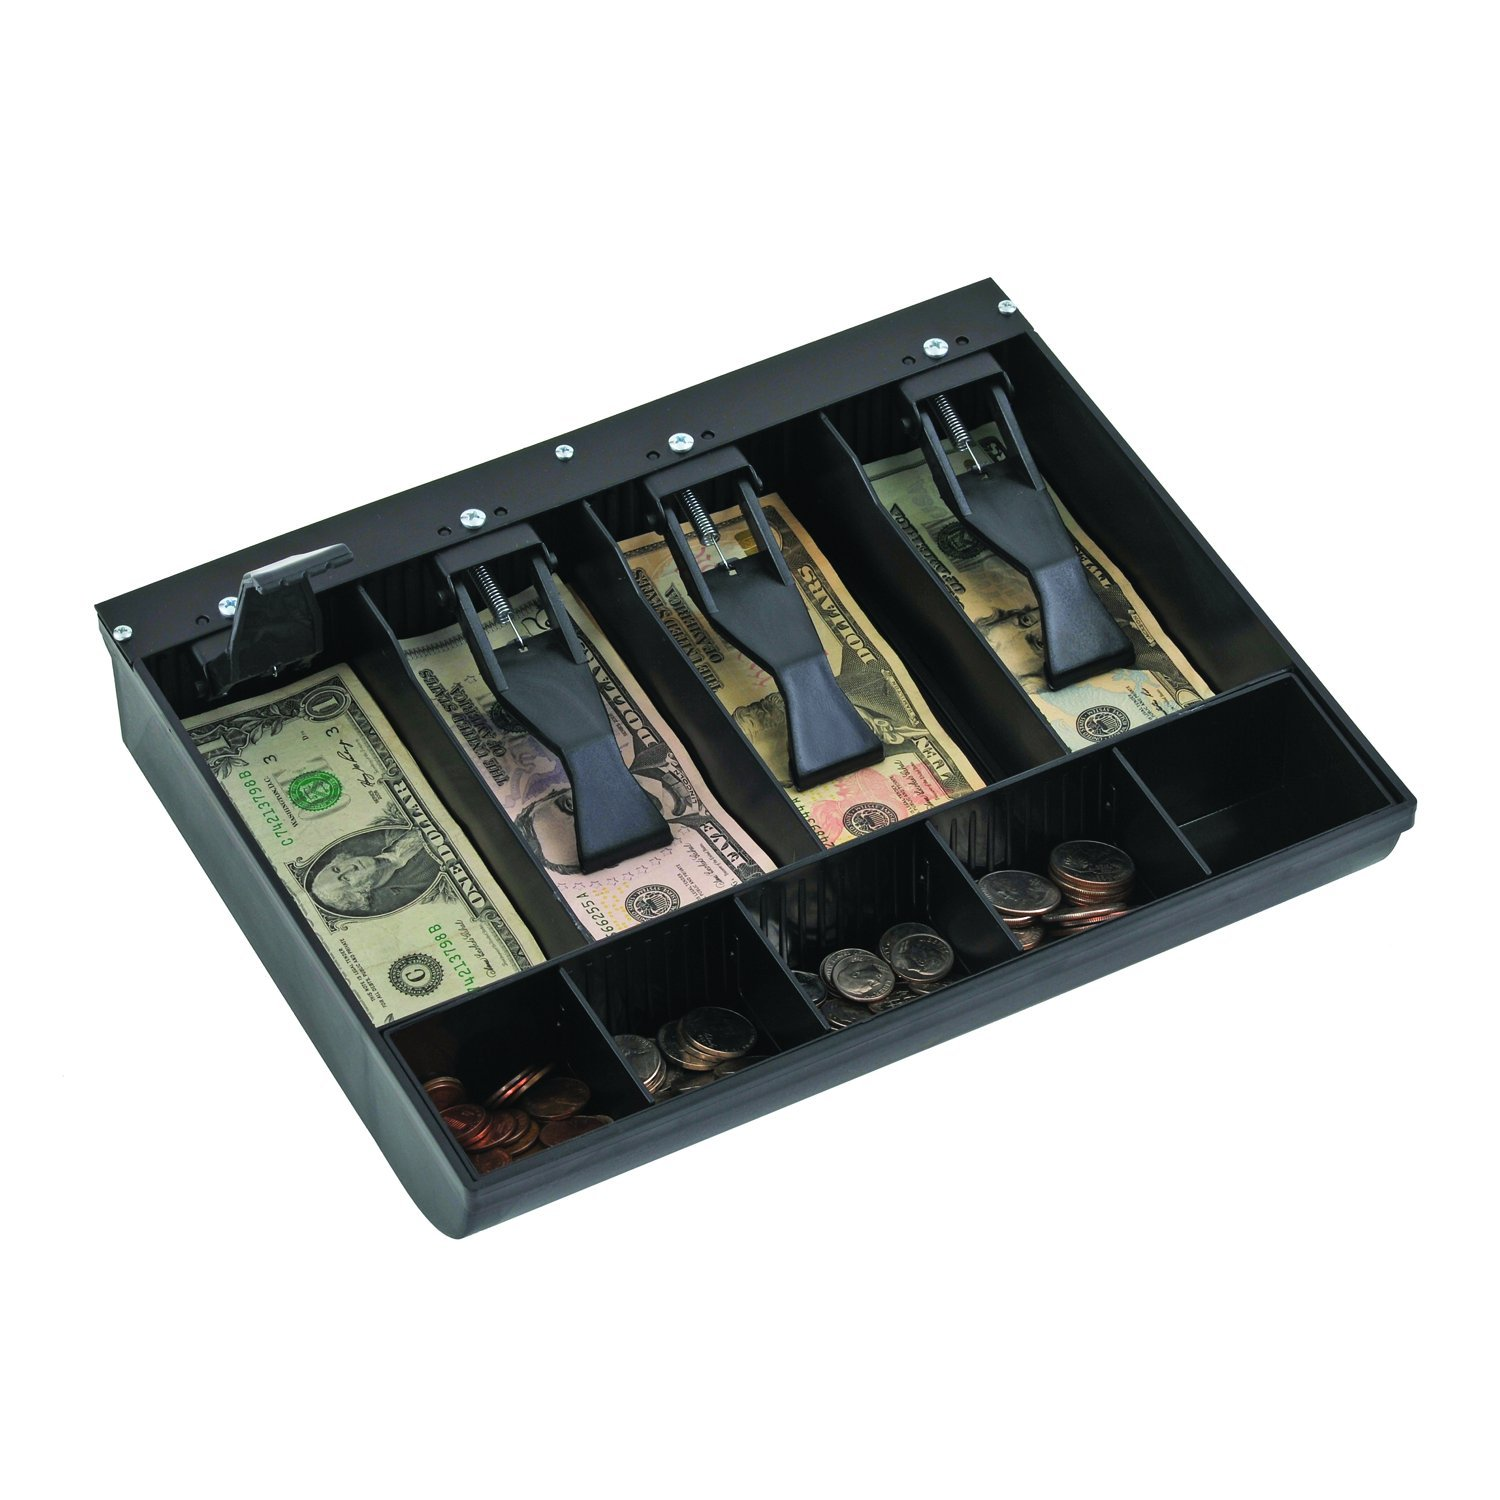 STEELMASTER 2.19 x 9.63 x 11.5 Inches, Replacement Cash Tray for Model 1046, Black (225284304) by MMF Industries (Image #2)